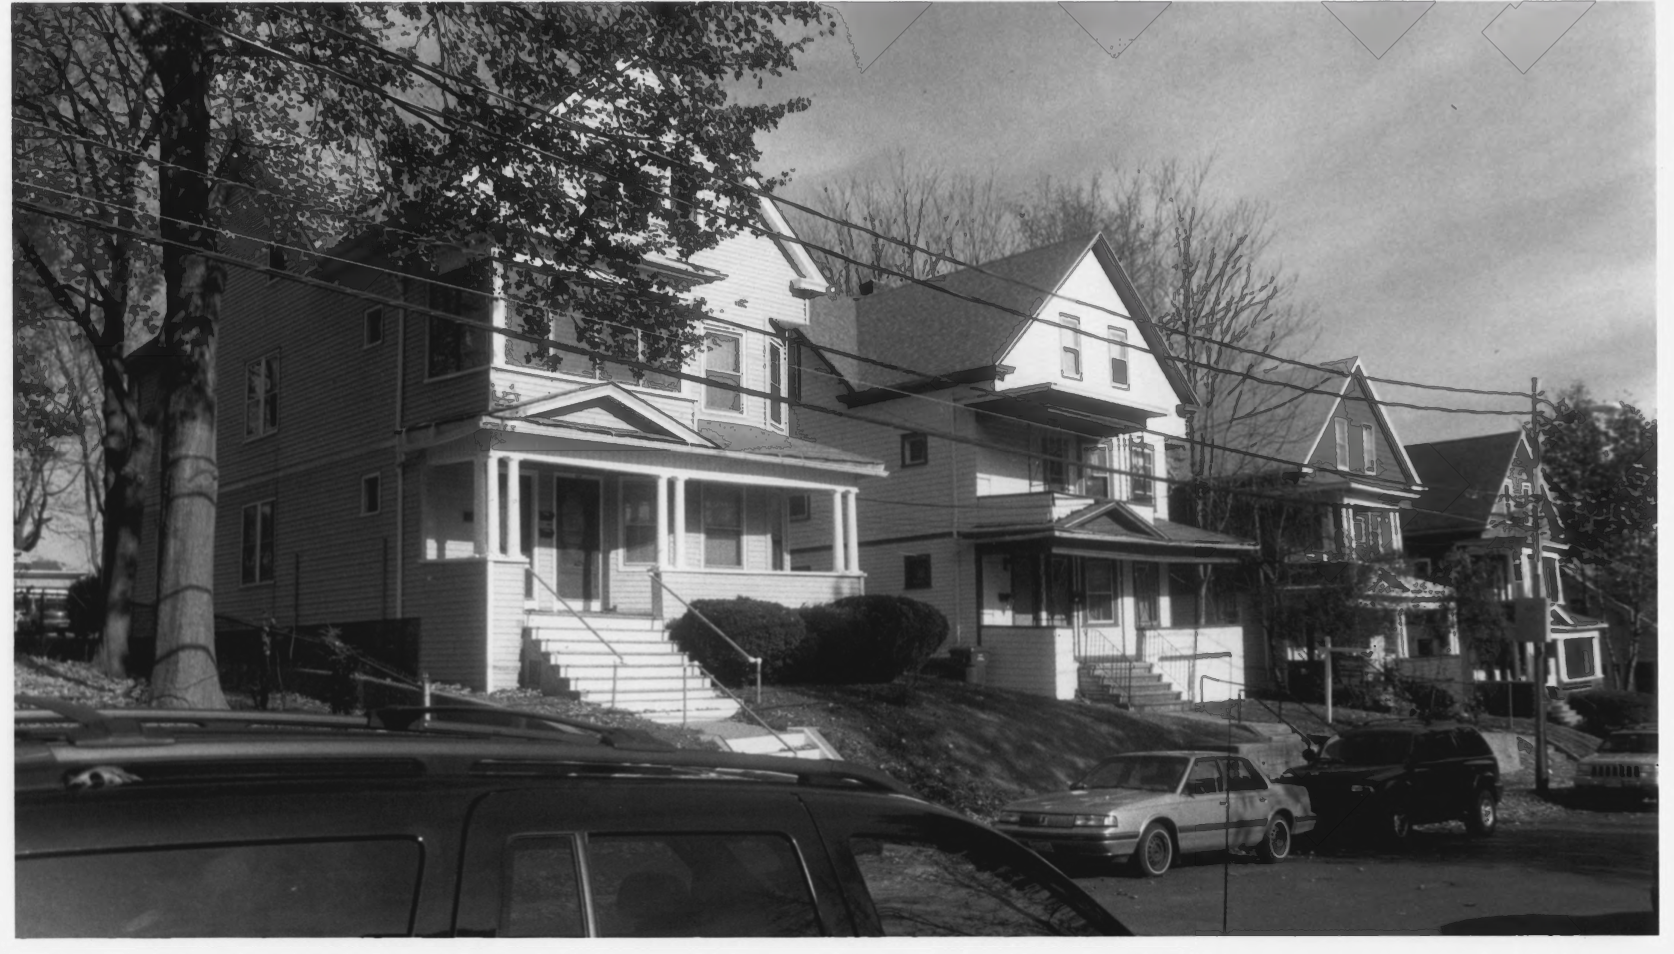 Allen Place - Lincoln Street Historic District Photo Record, Maintained by the NPS, Photo 14